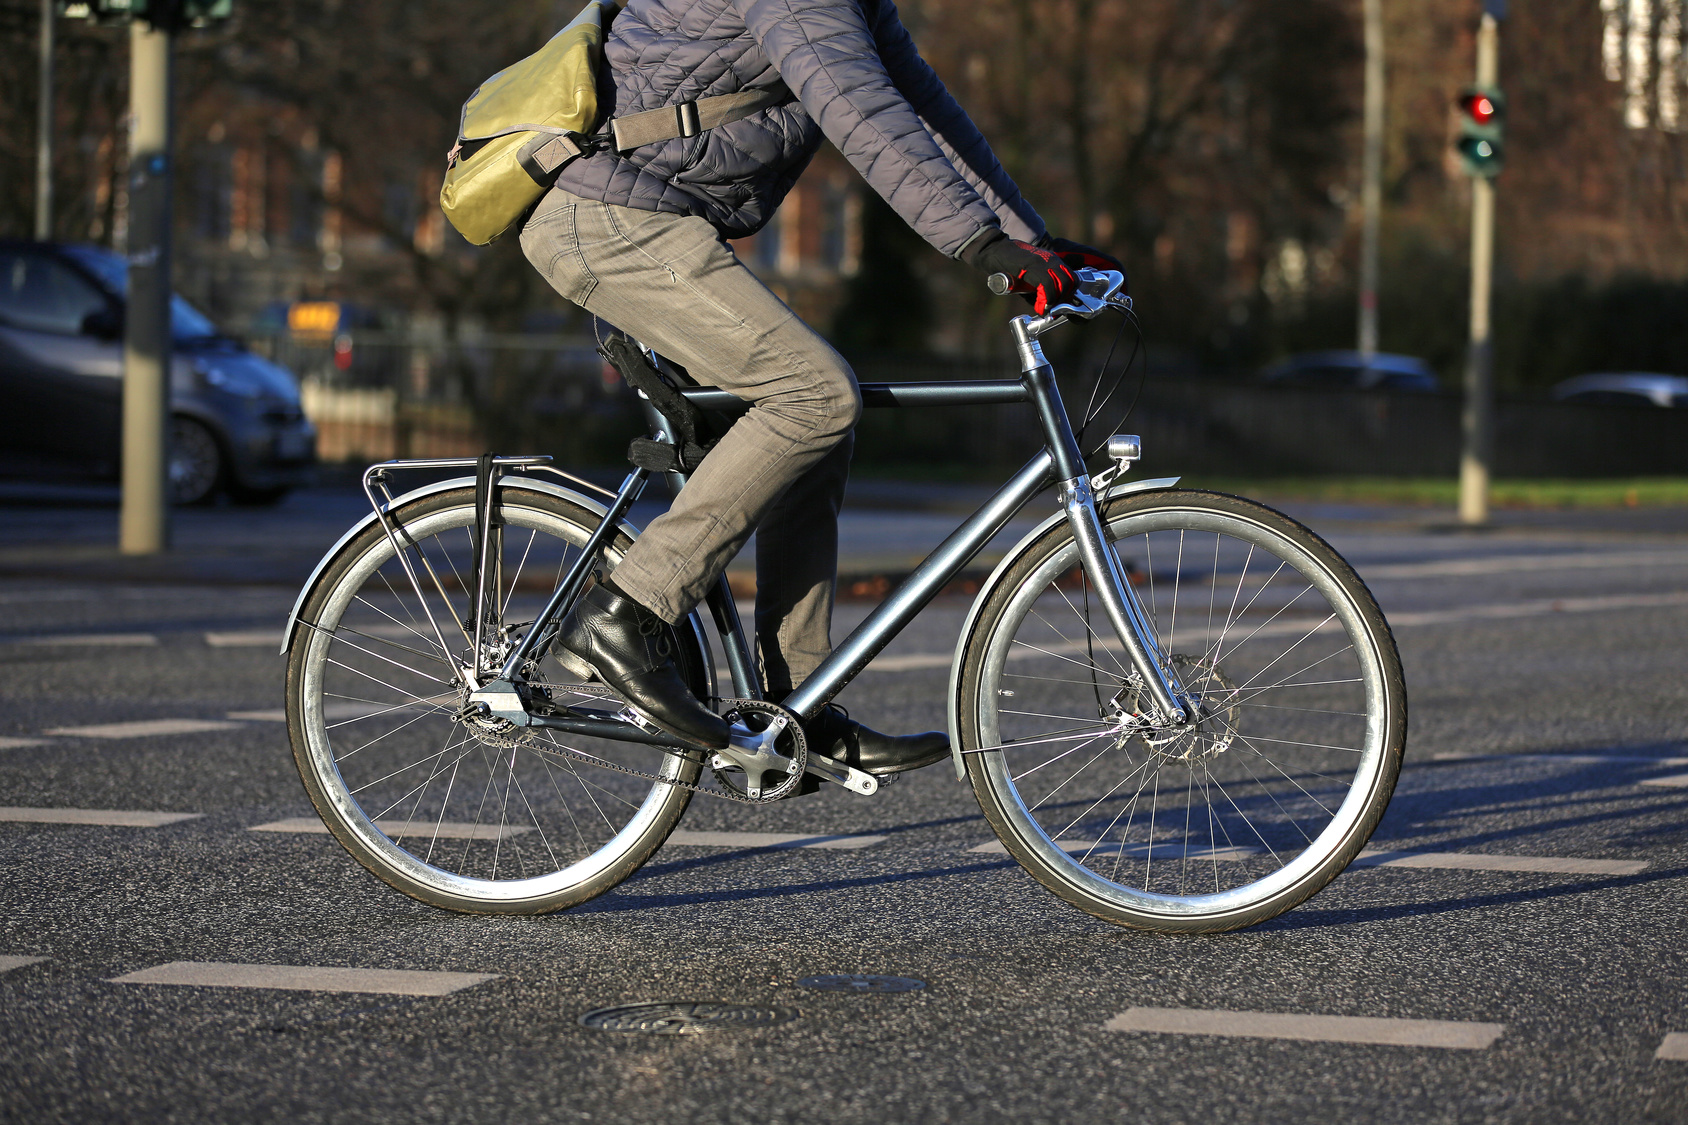 Cyclist attacked